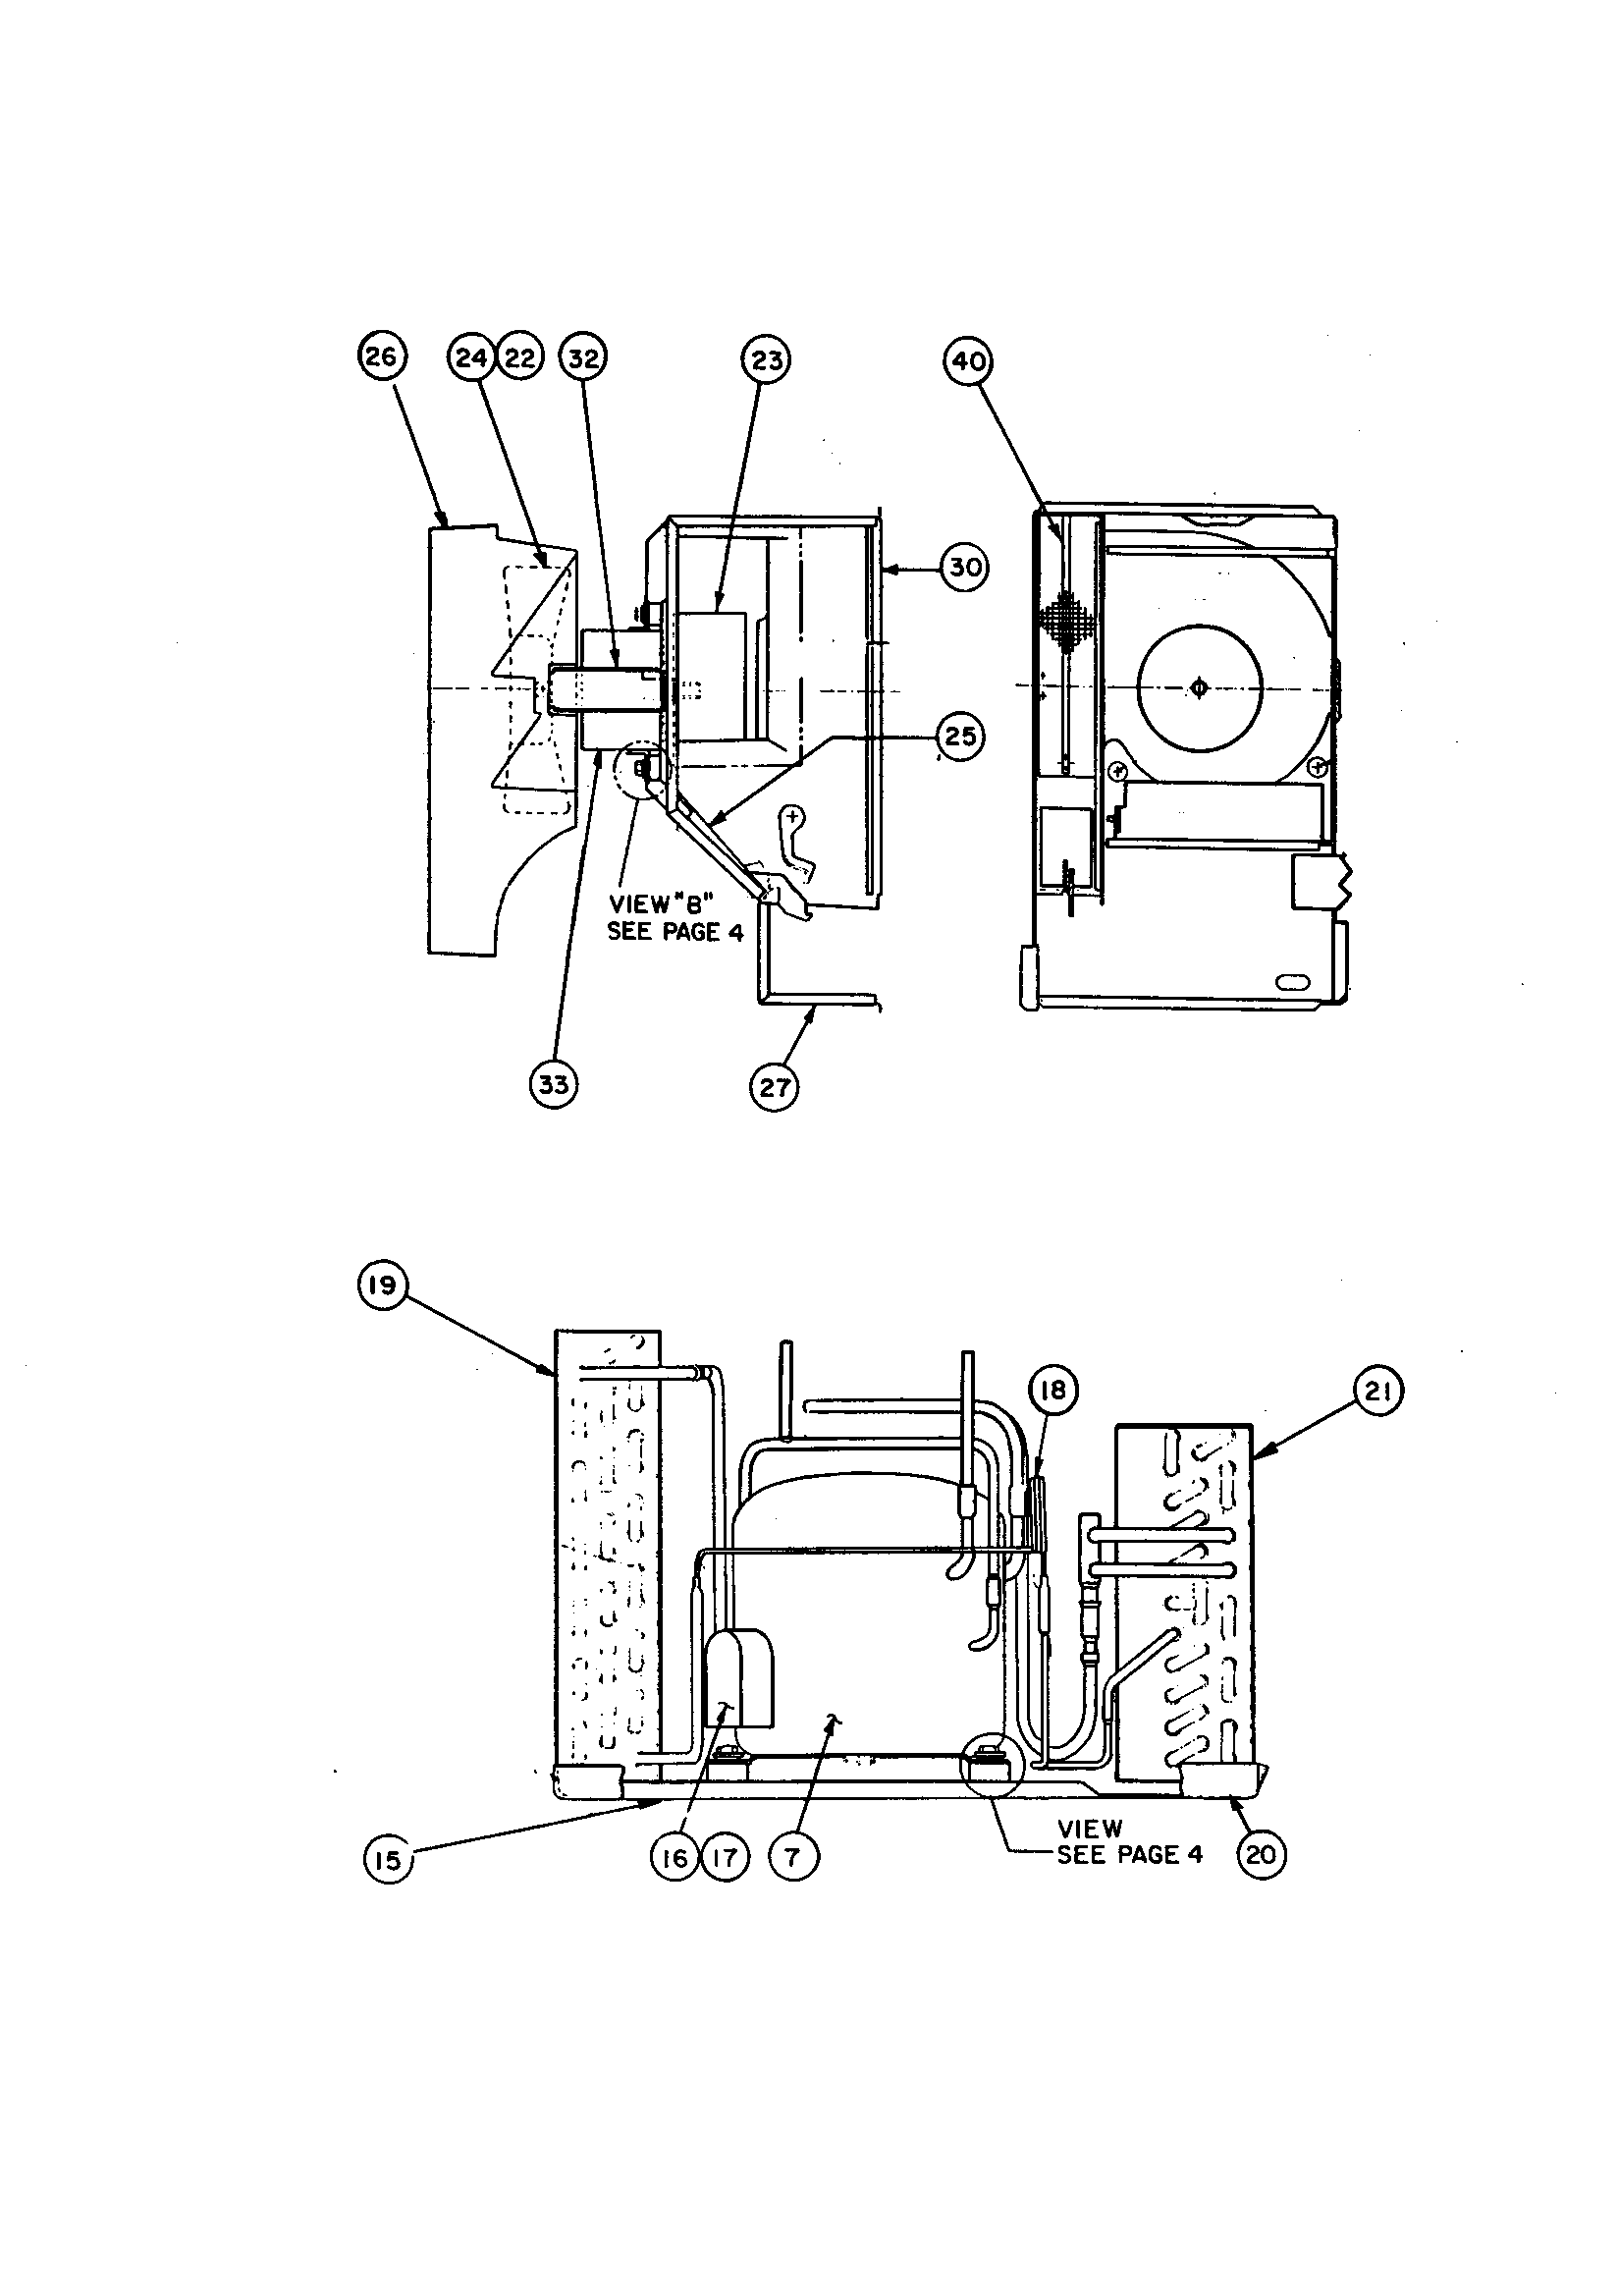 Carrier 51DZA009790 heater assembly & compressor diagram